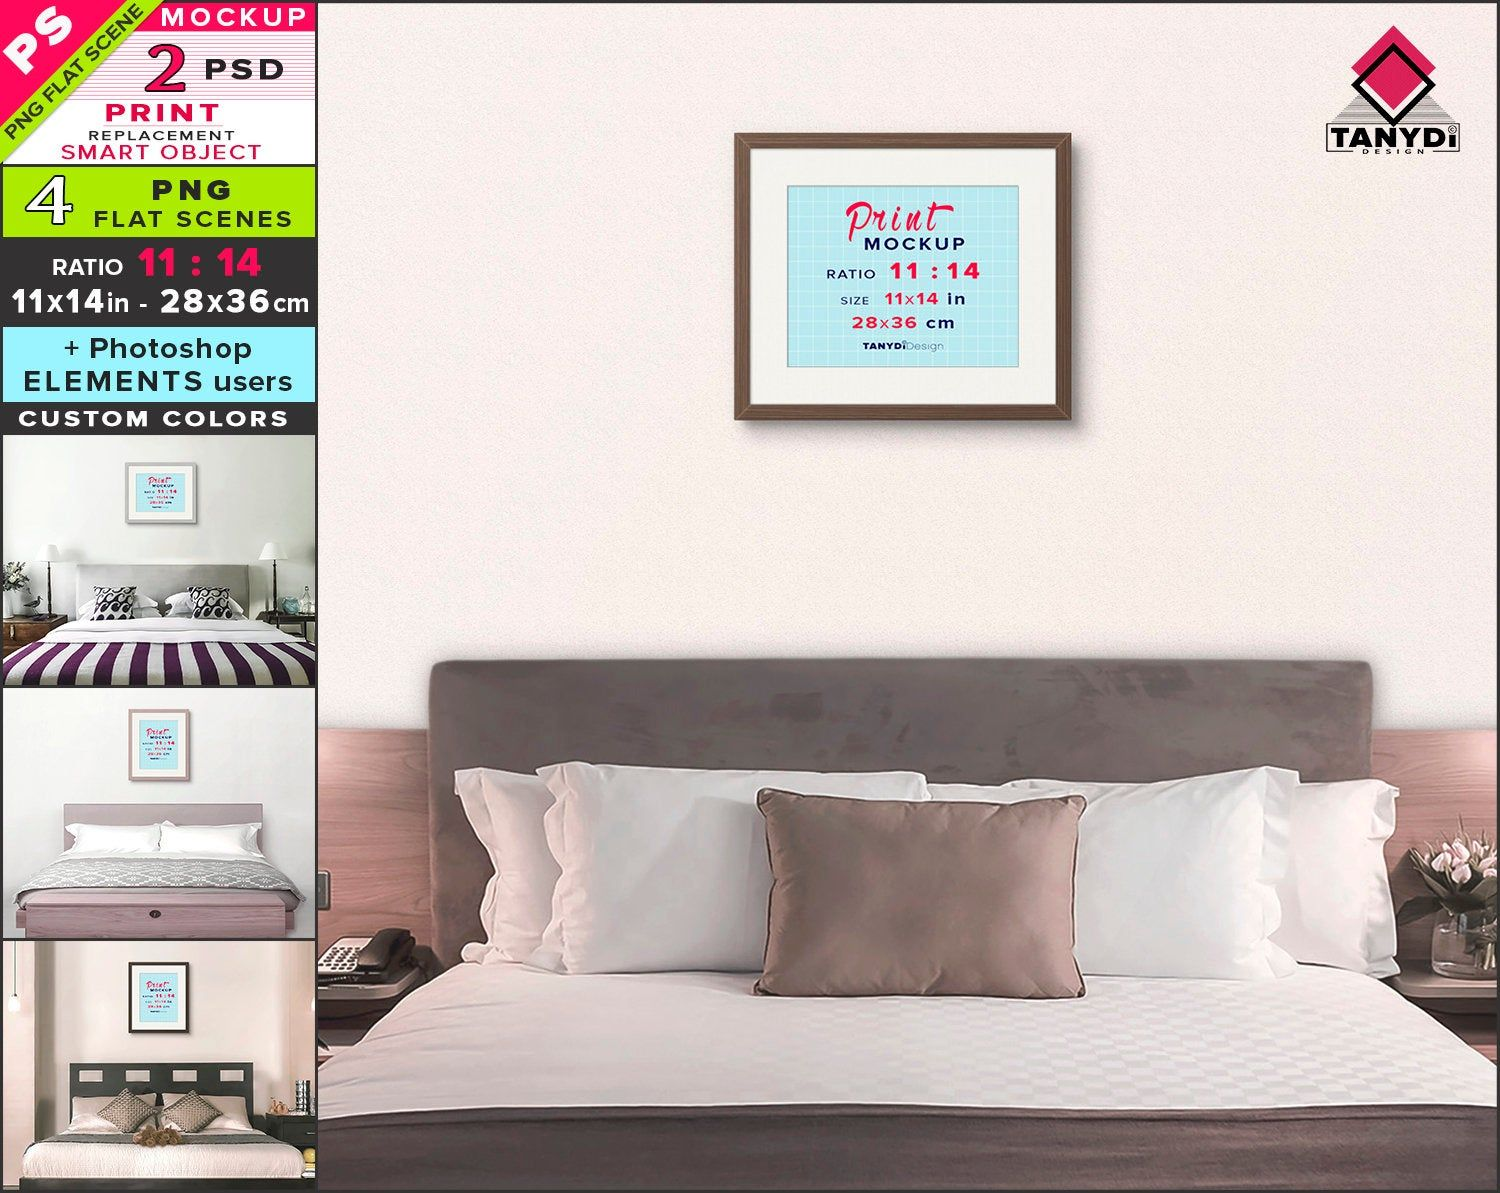 11x14 Frame On Bedroom Wall Photoshop Print Mockup 4 Png Etsy Print Mockup Bedroom Wall Photoshop